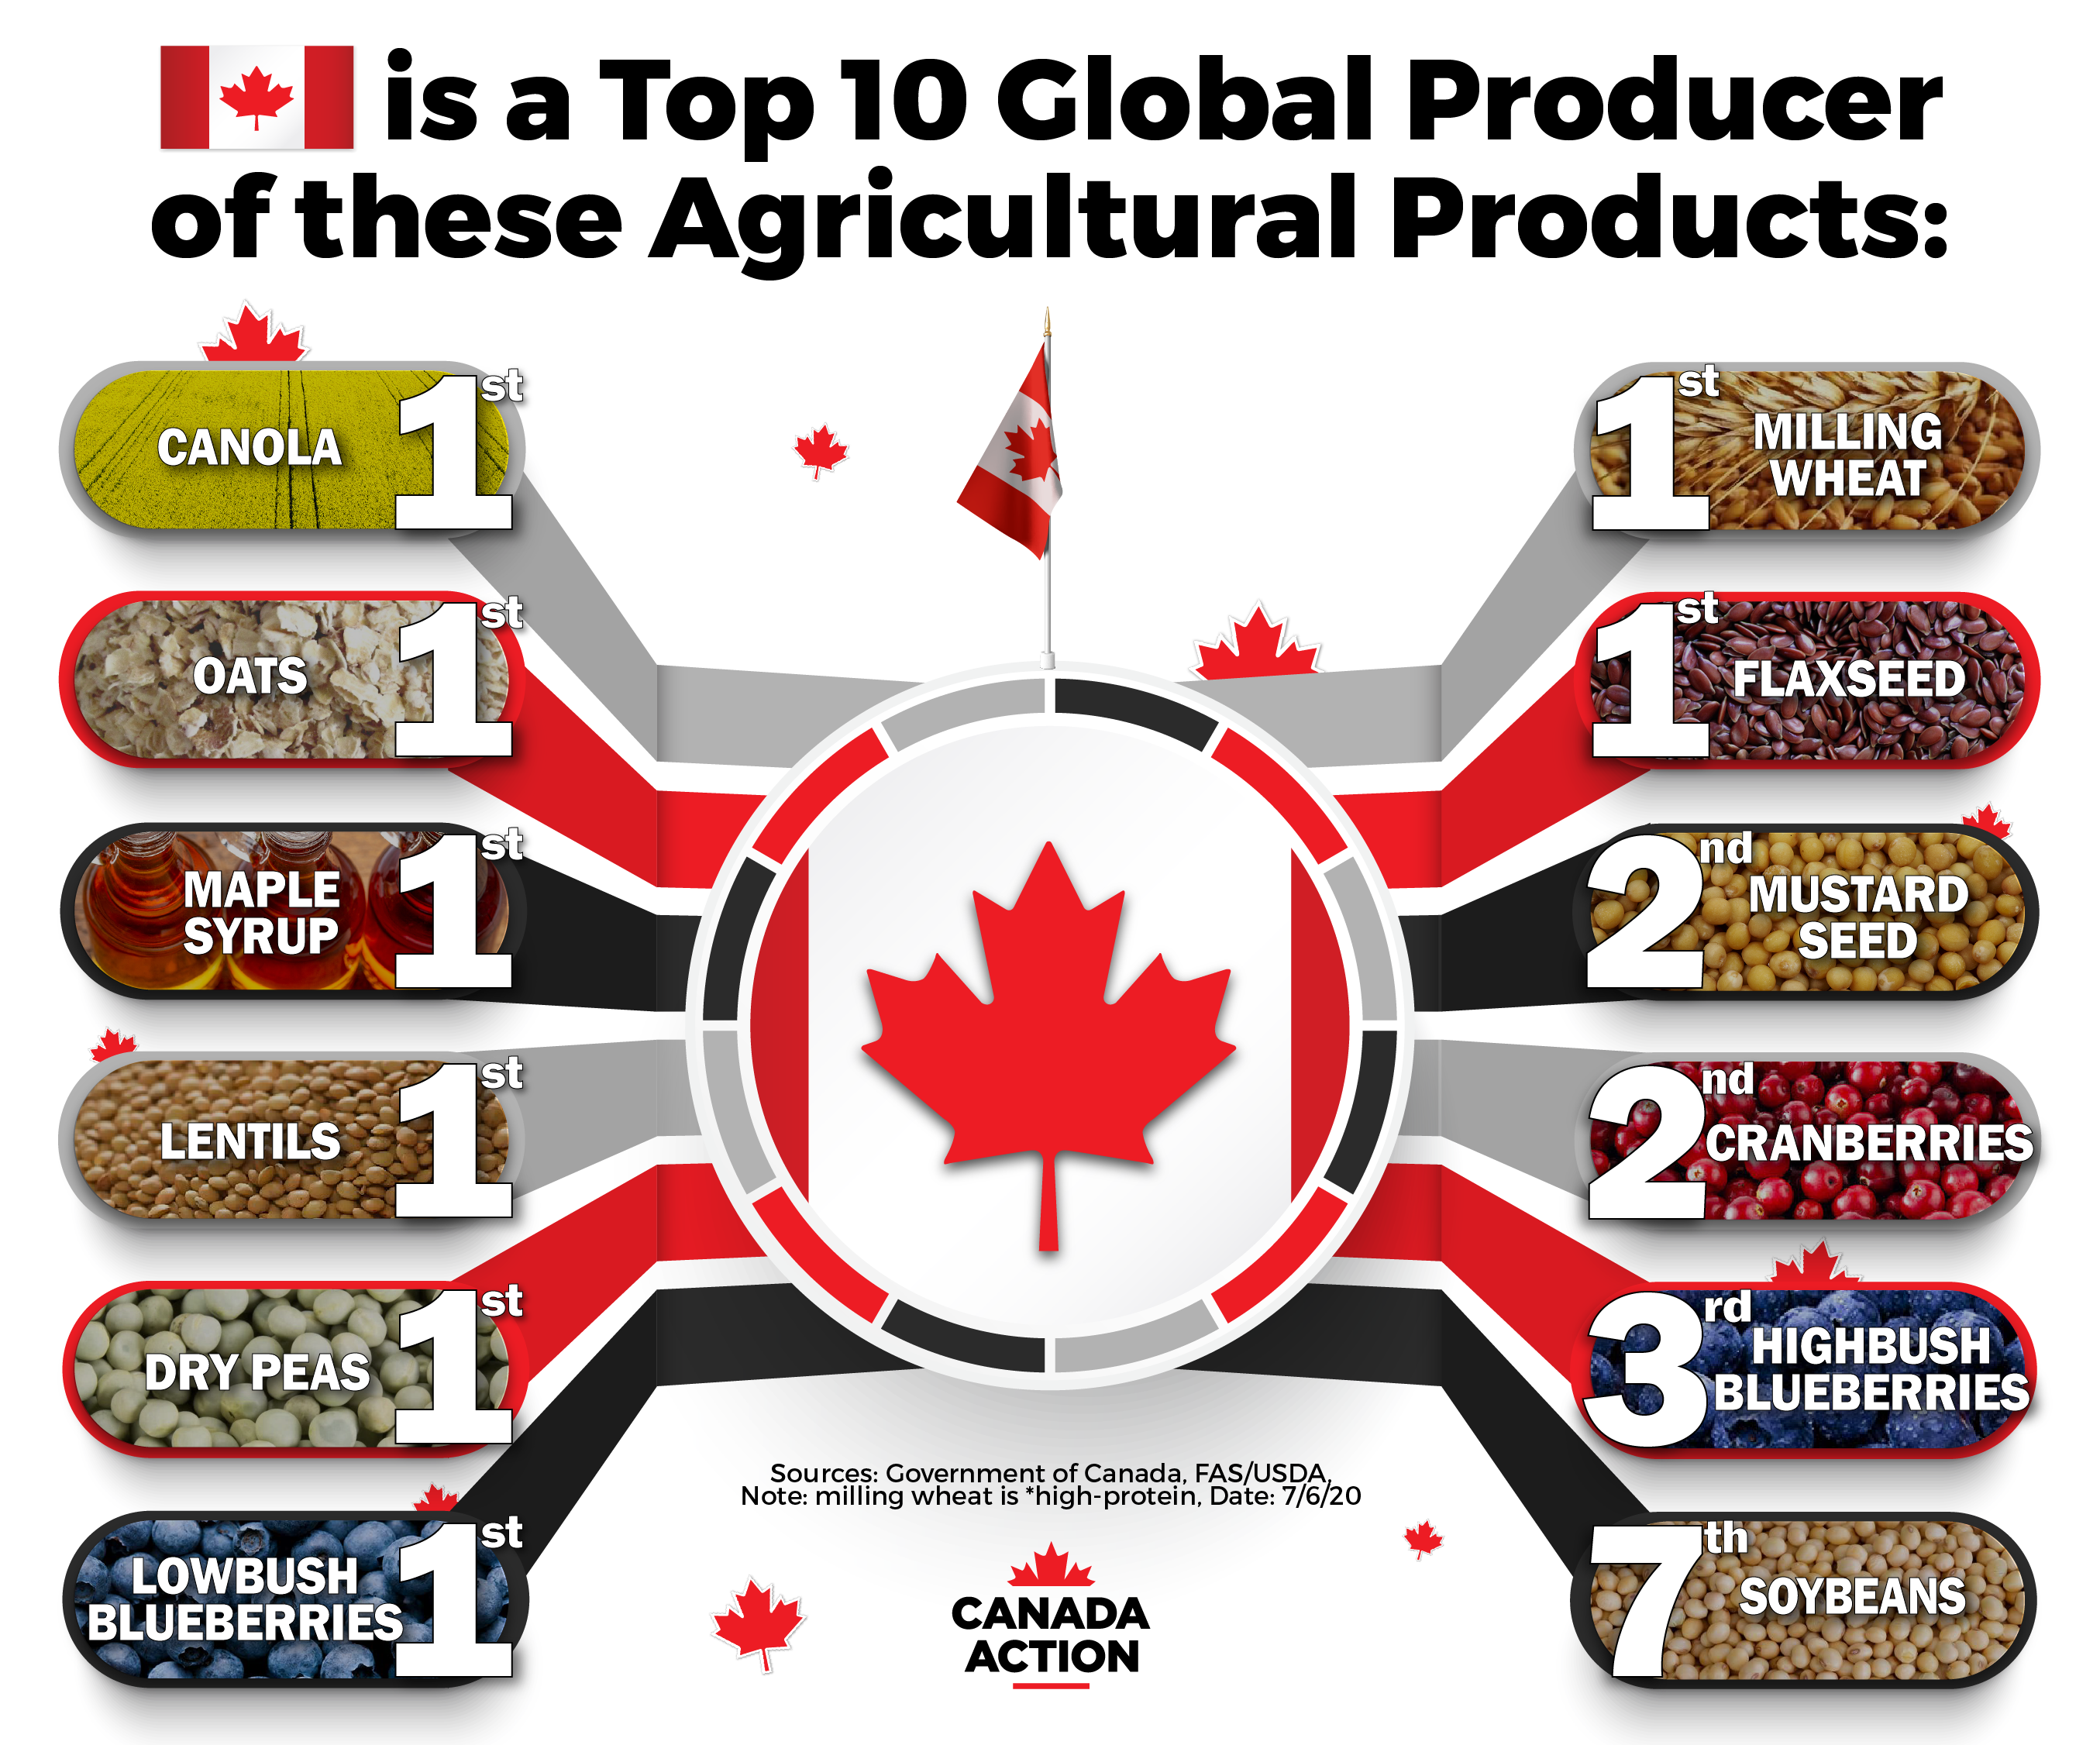 Canada is a top 10 global producer of many agricultural products